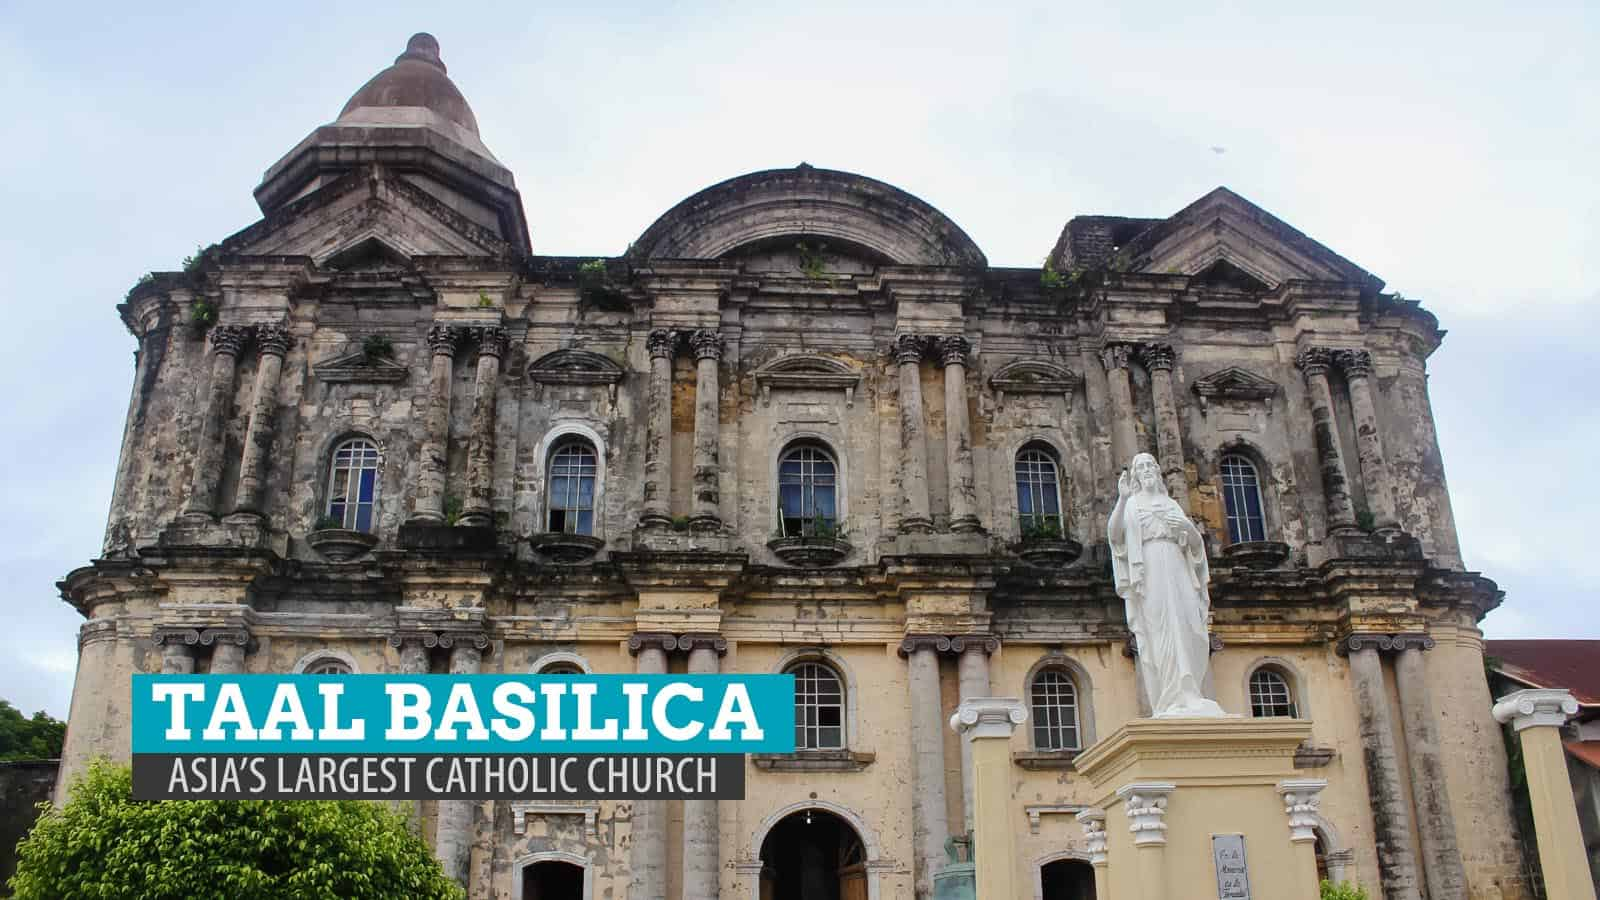 Basilica de San Martin de Tours, or simply Taal Basilica, is Asia's largest Catholic church.